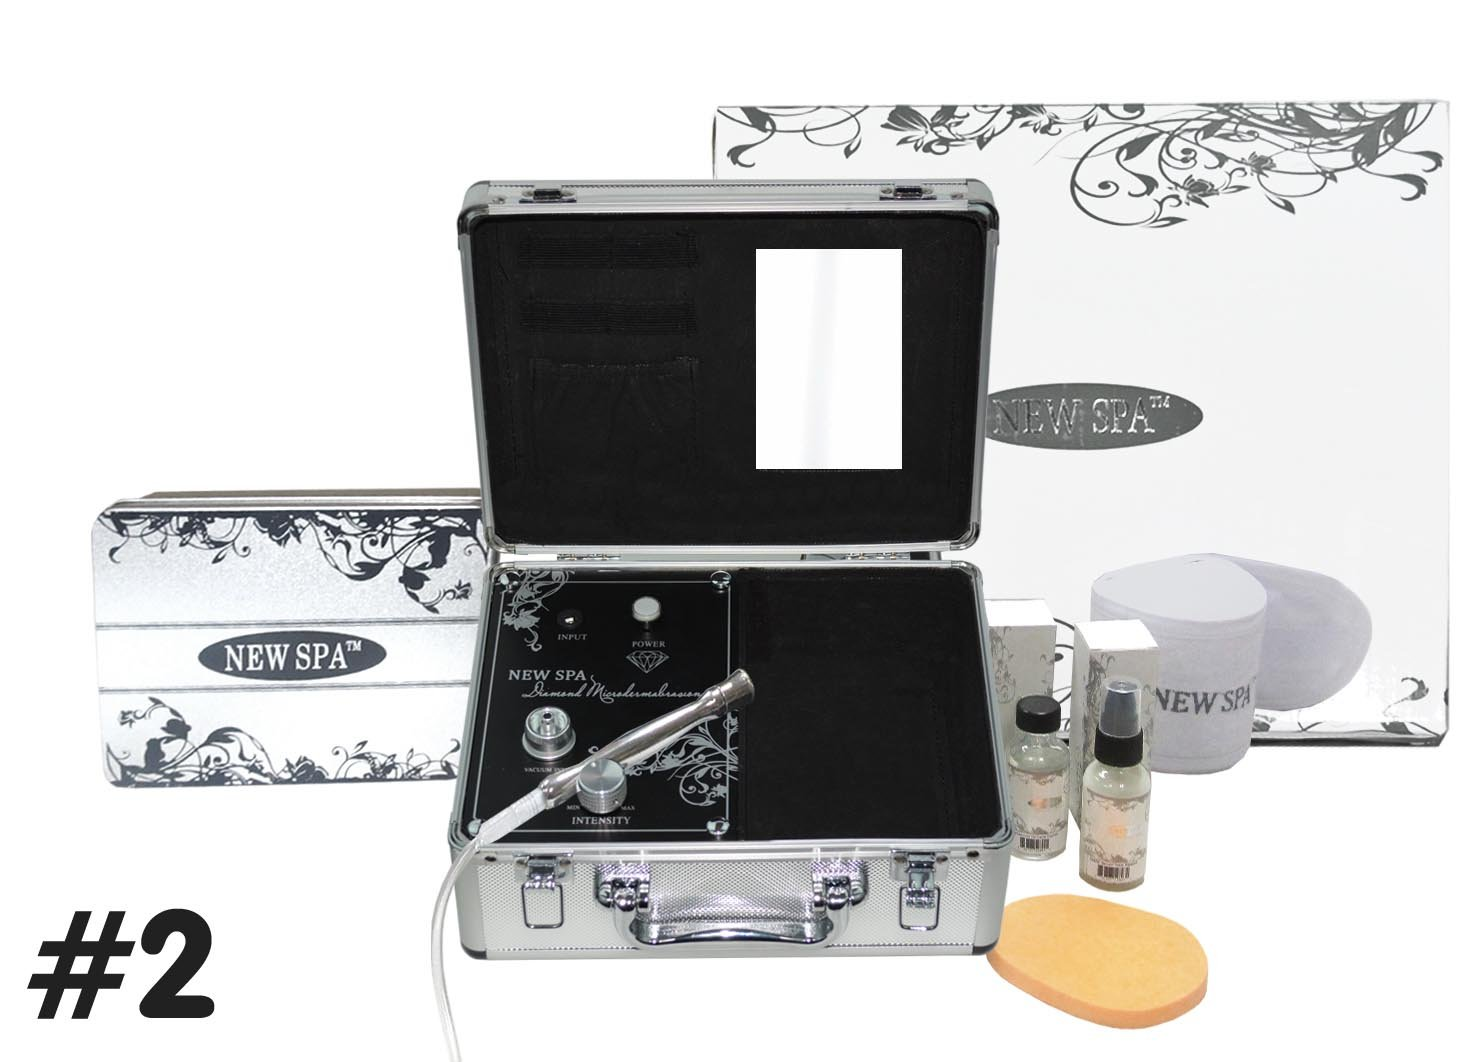 microdermmd grade home microdermabrasion machine reviews